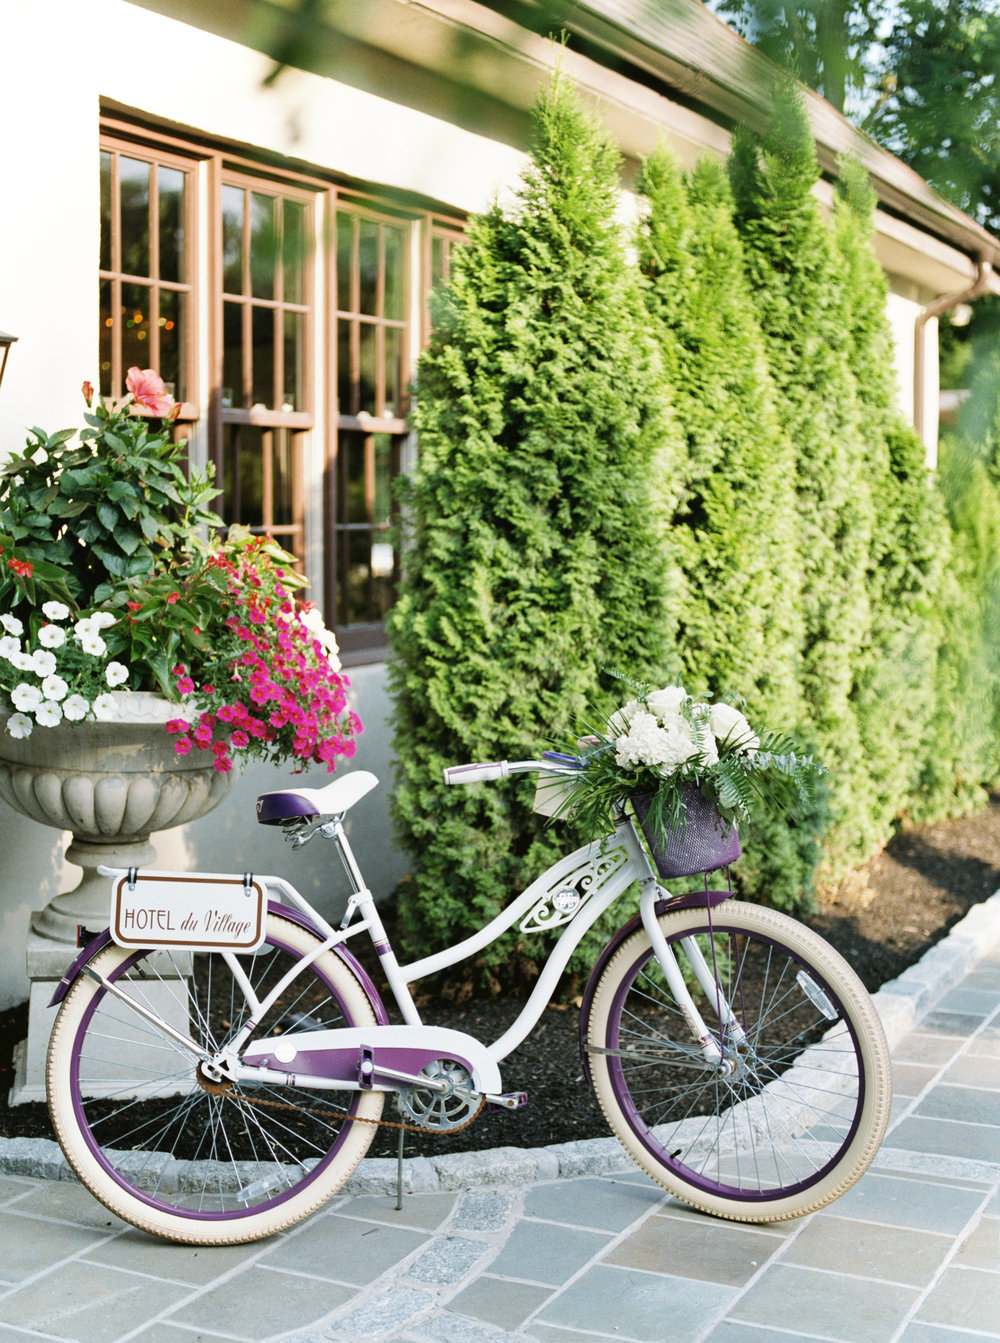 We love the bikes provided for couples on their wedding day at Hotel du Village.